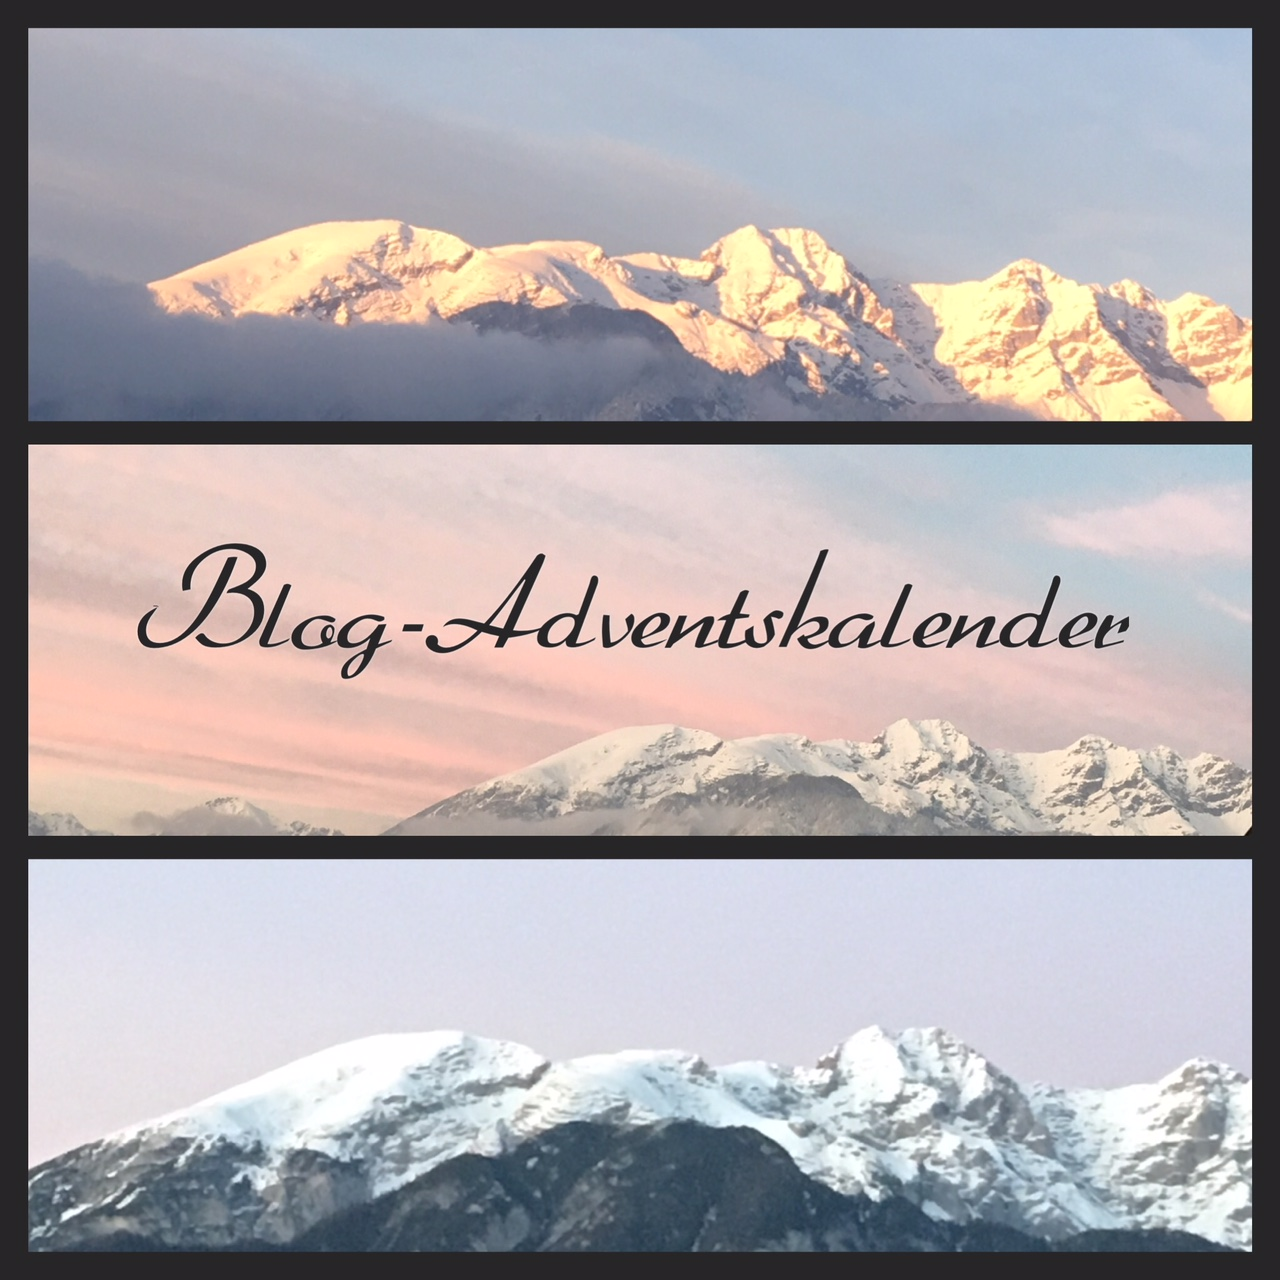 Blog-Adventskalender 2017